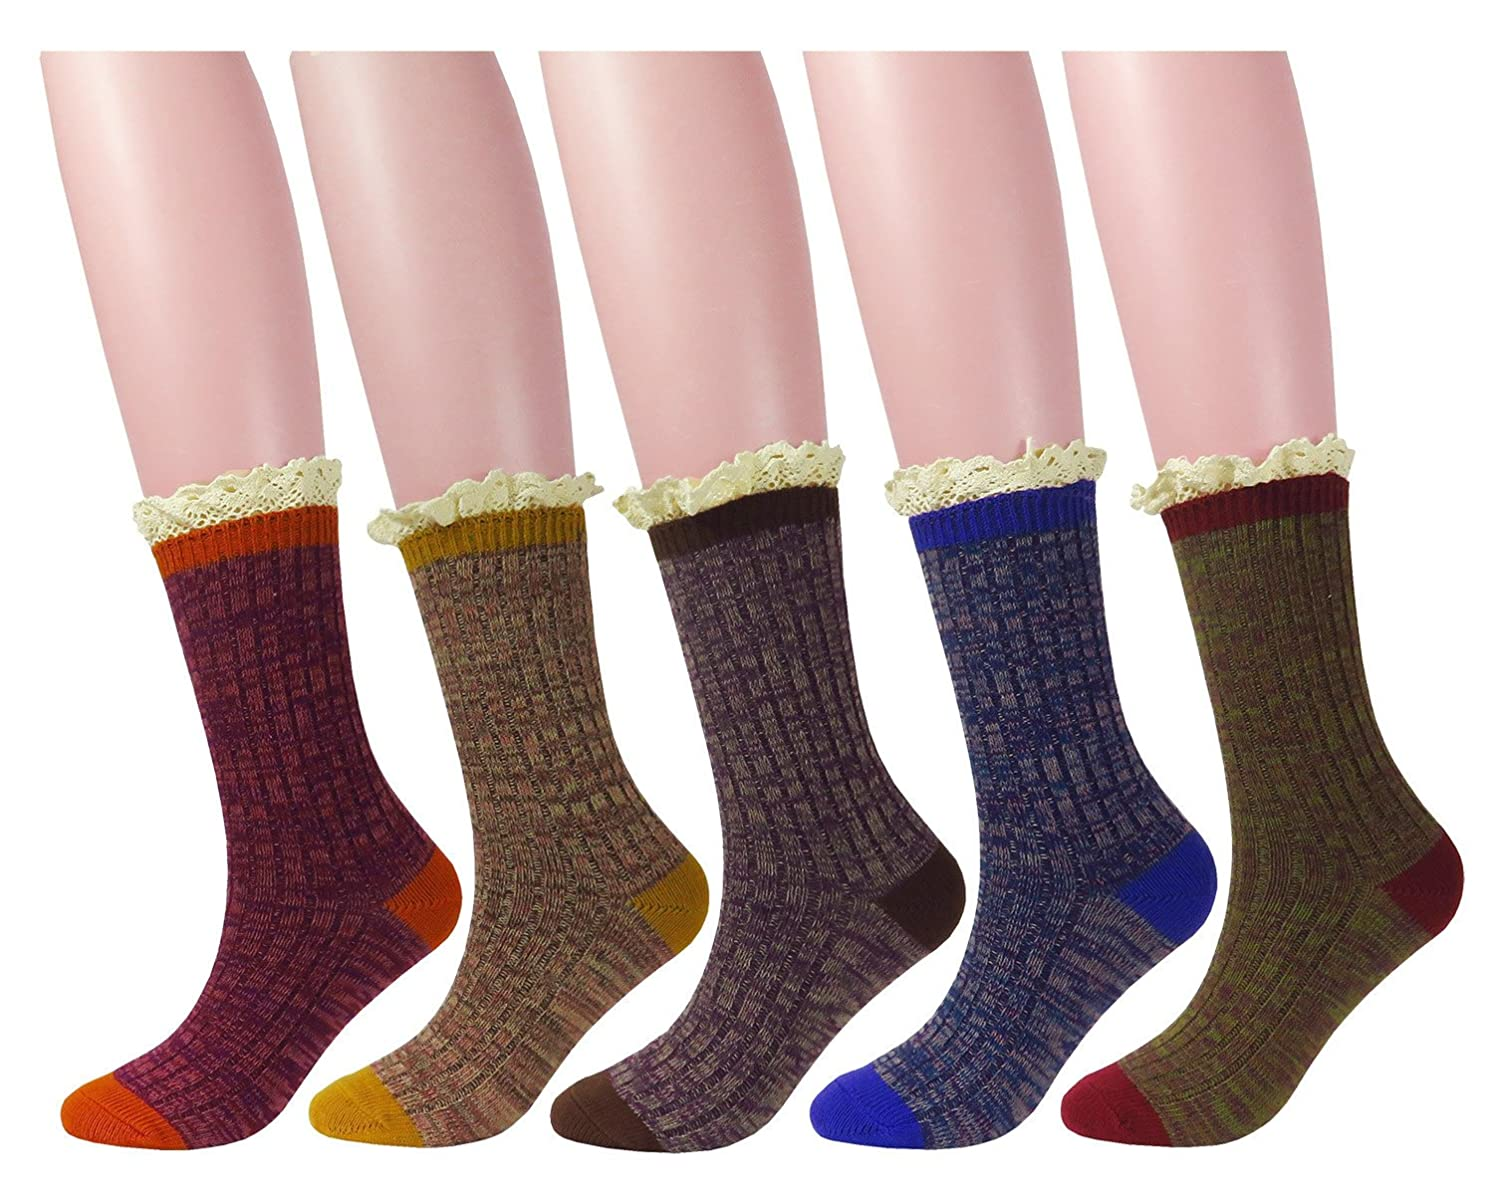 WEILAI SOCKS Women 5 Pack Vintage Lace Winter Wool Warm Comfort Cozy Crew Socks